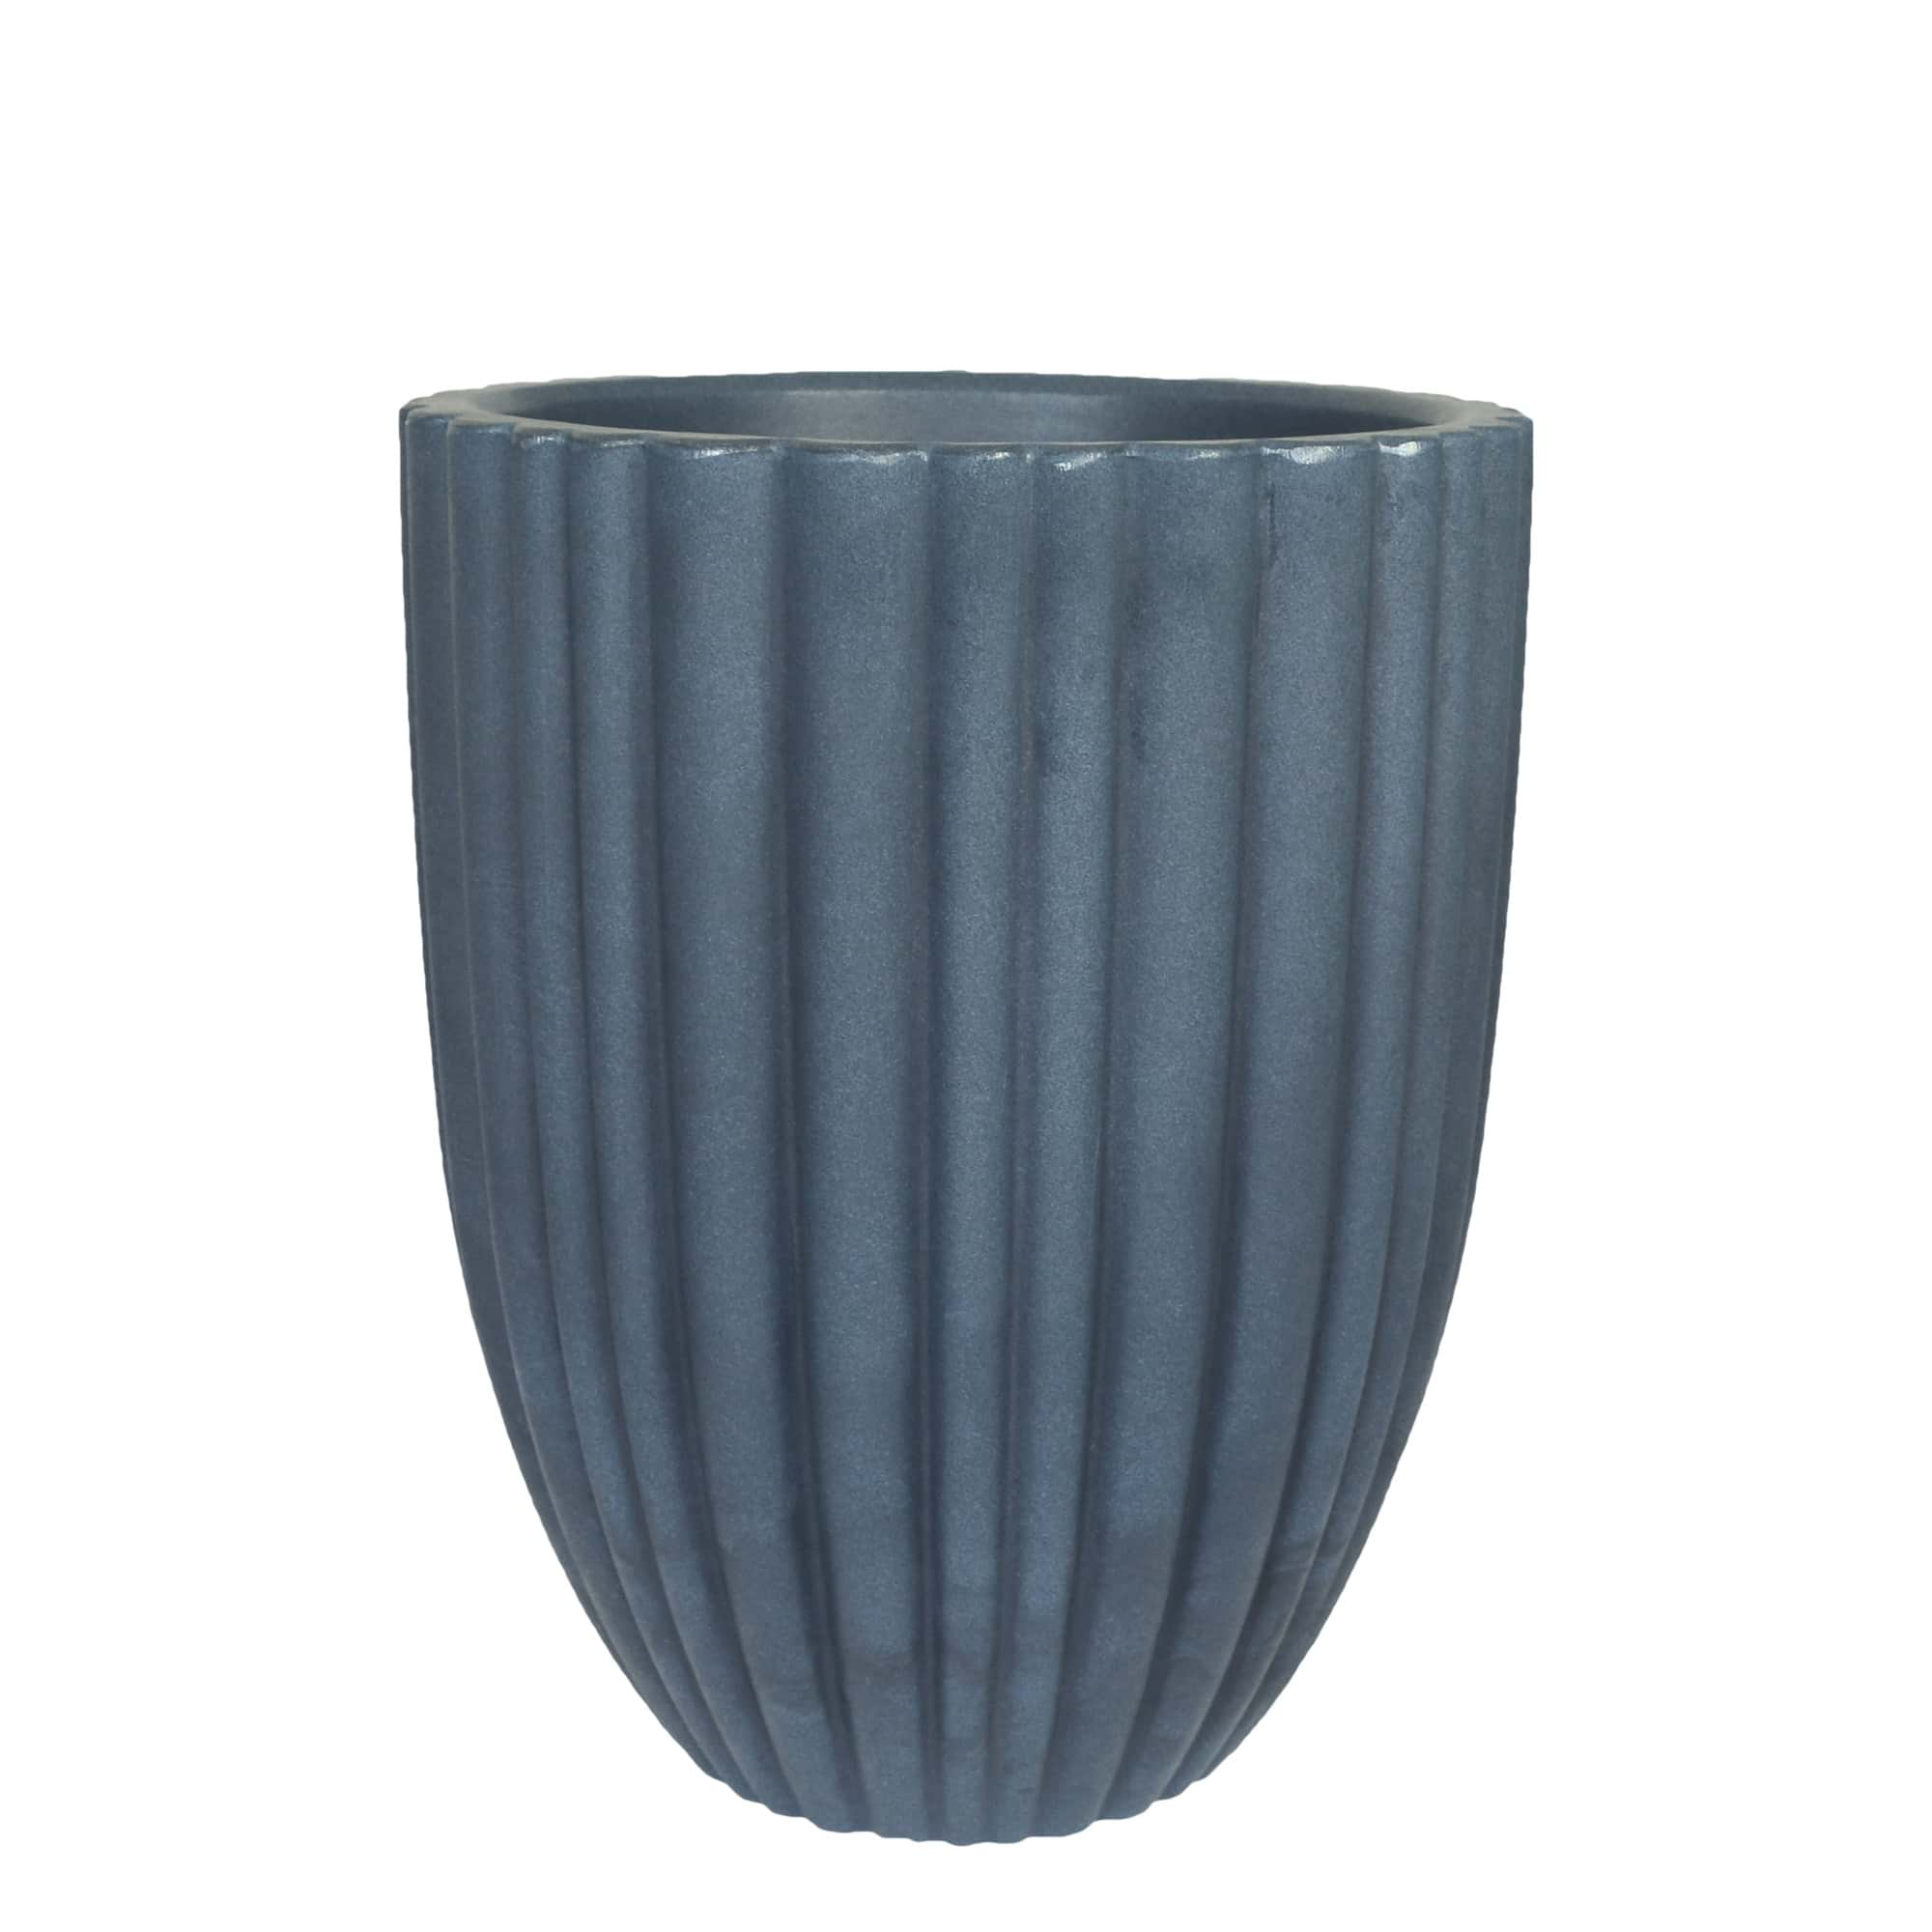 Vaso Cacau 32 x 46 cm Antique Azul